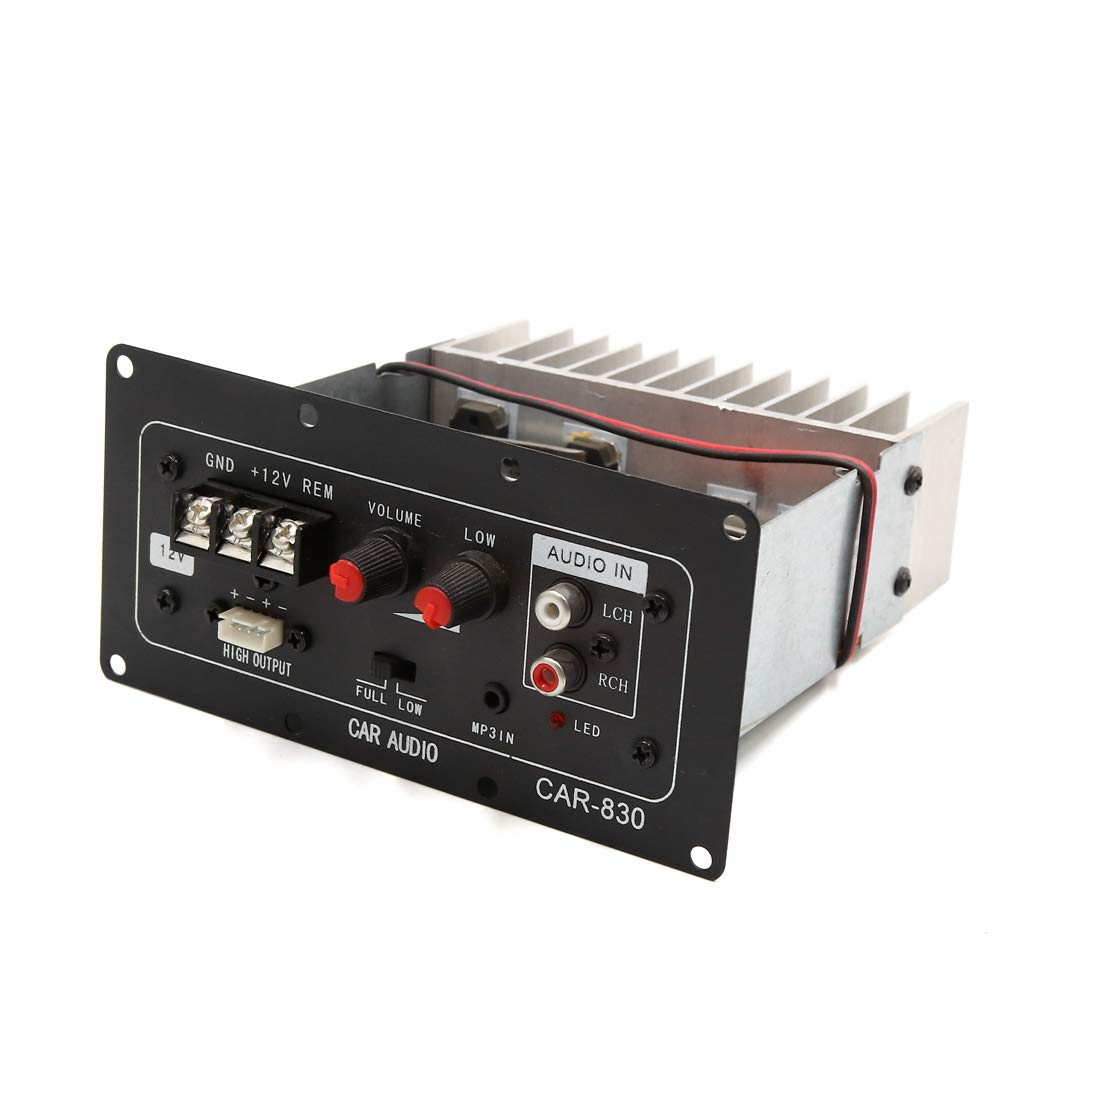 uxcell DC 12V 90W Car Vehicle Audio Stereo Power Amplifier Board Module Black